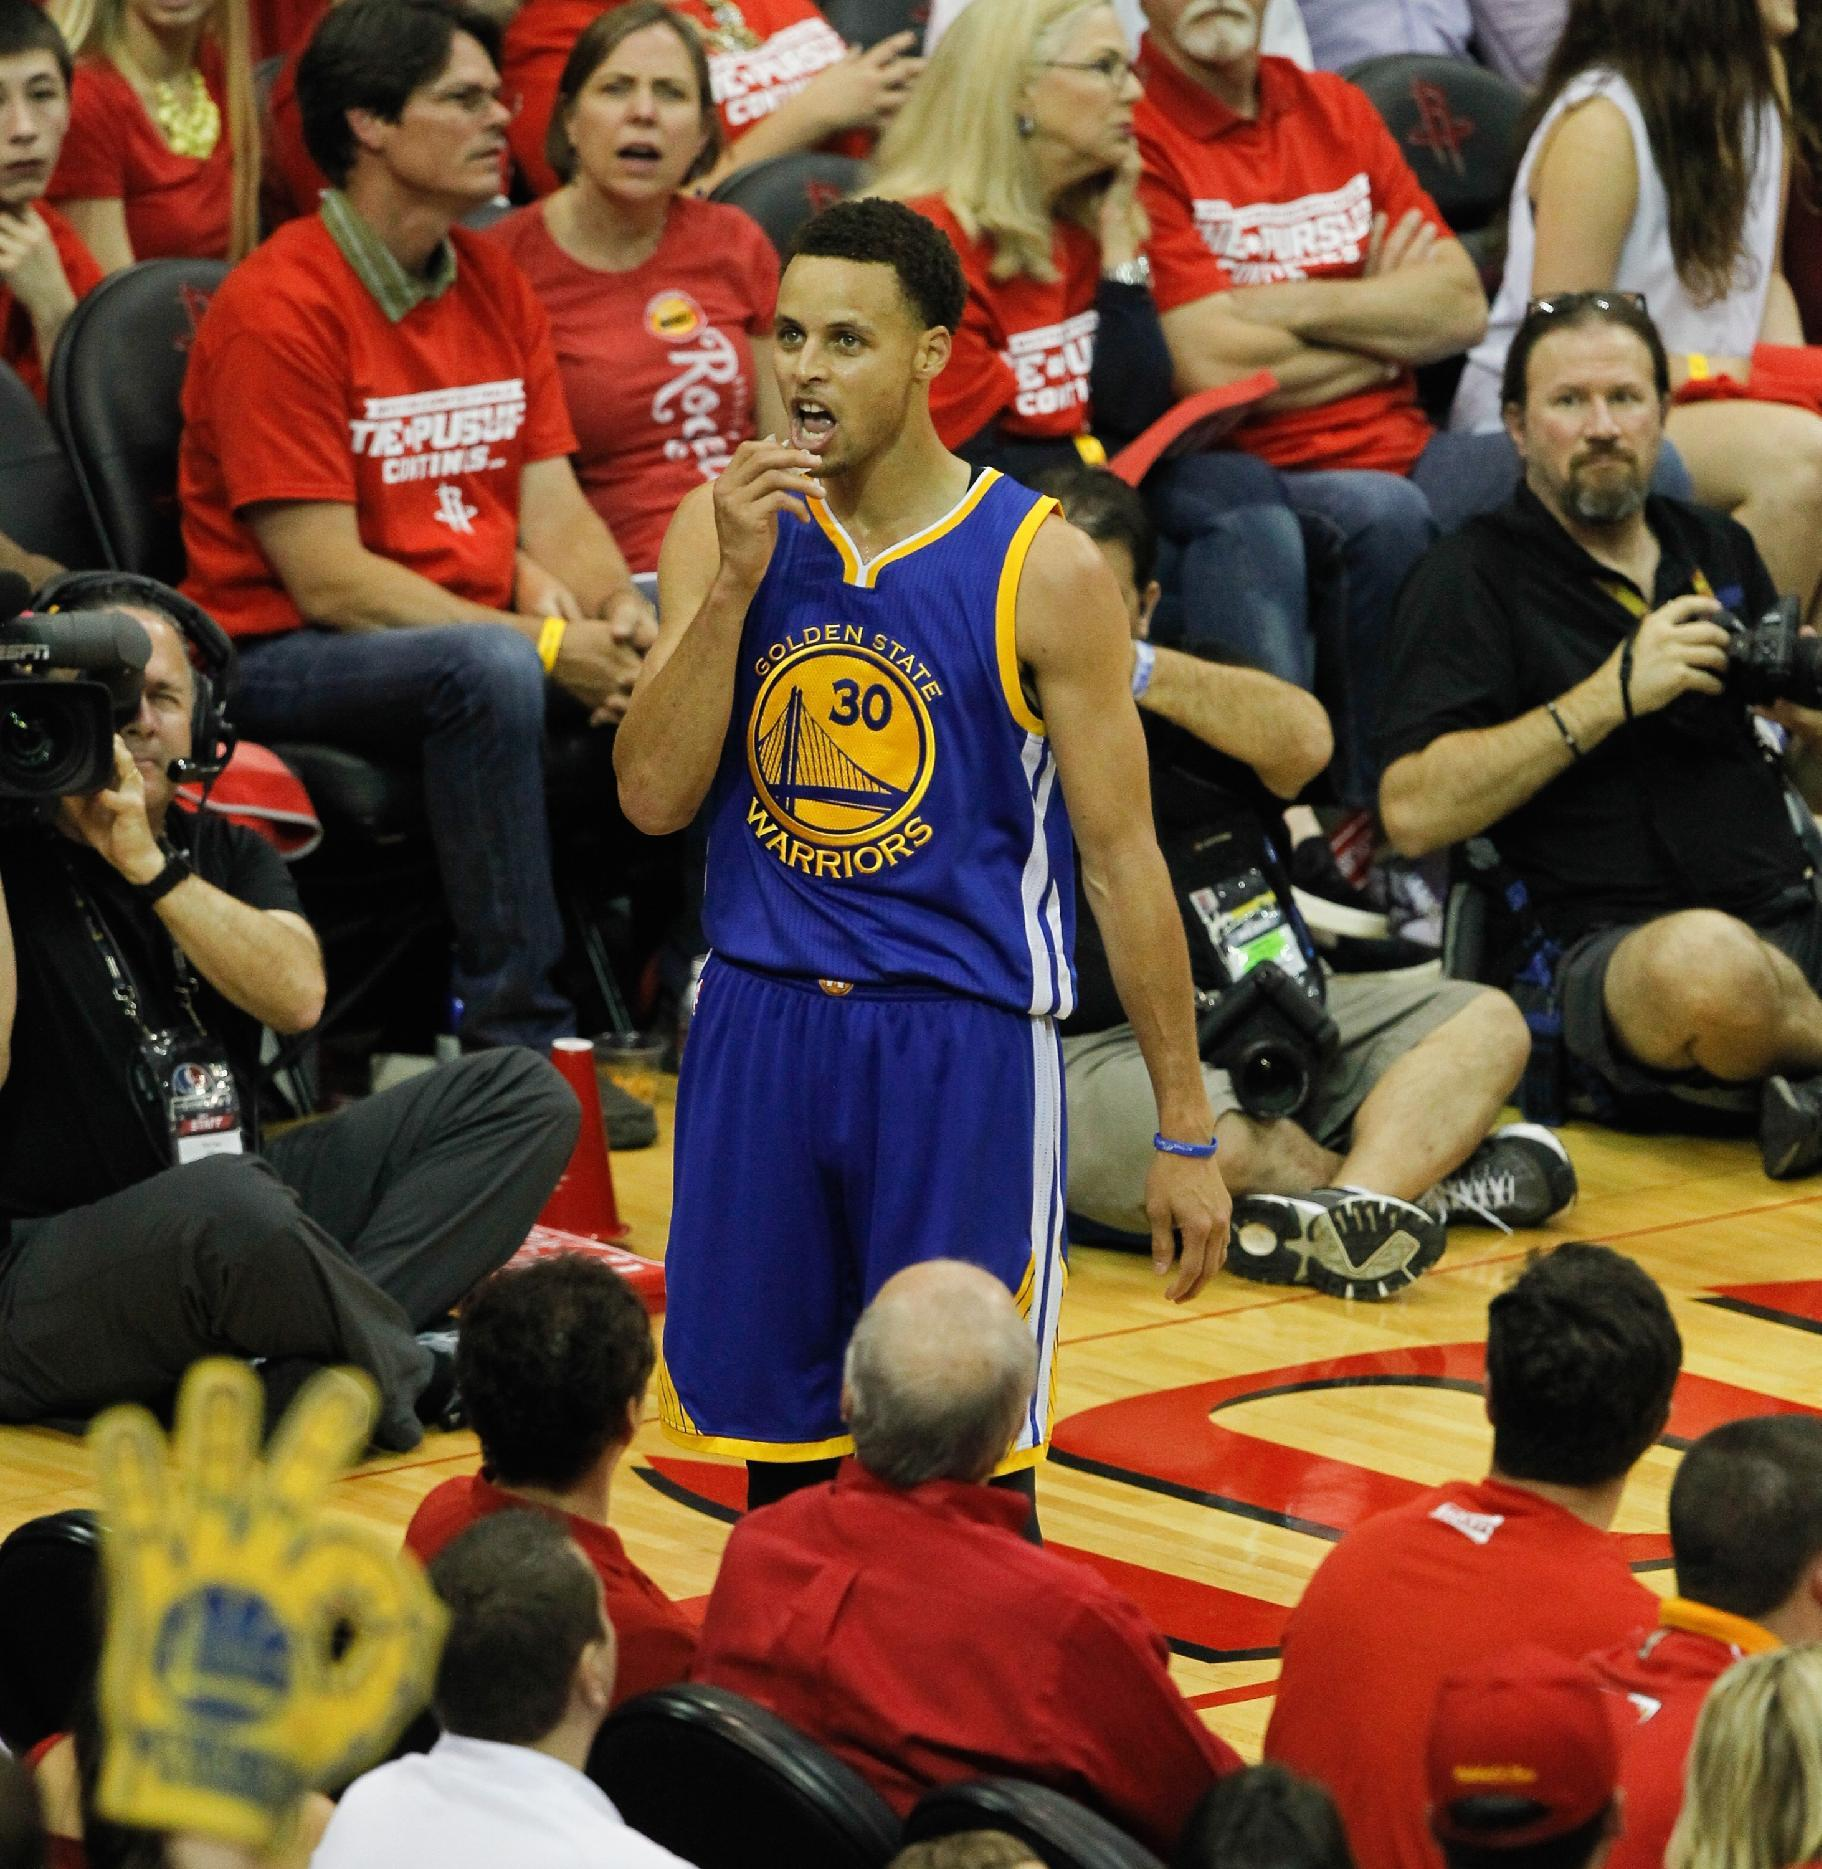 Stephen Curry stares down the crowd after drilling a corner 3. (Bob Levey/Getty Images)